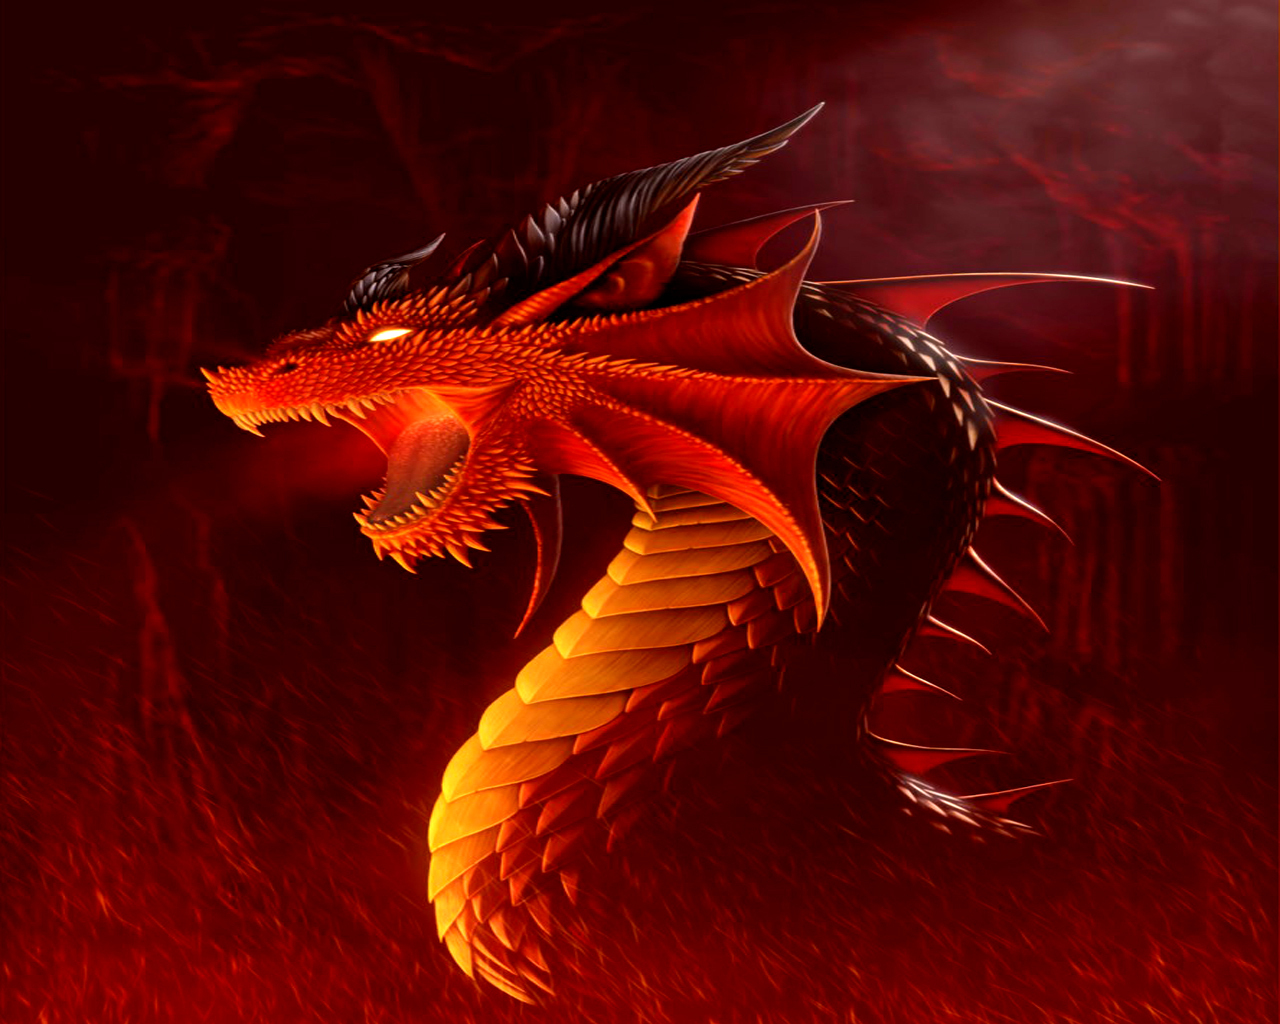 Dragon Wallpaper - Dragons Wallpaper (13975553) - Fanpop